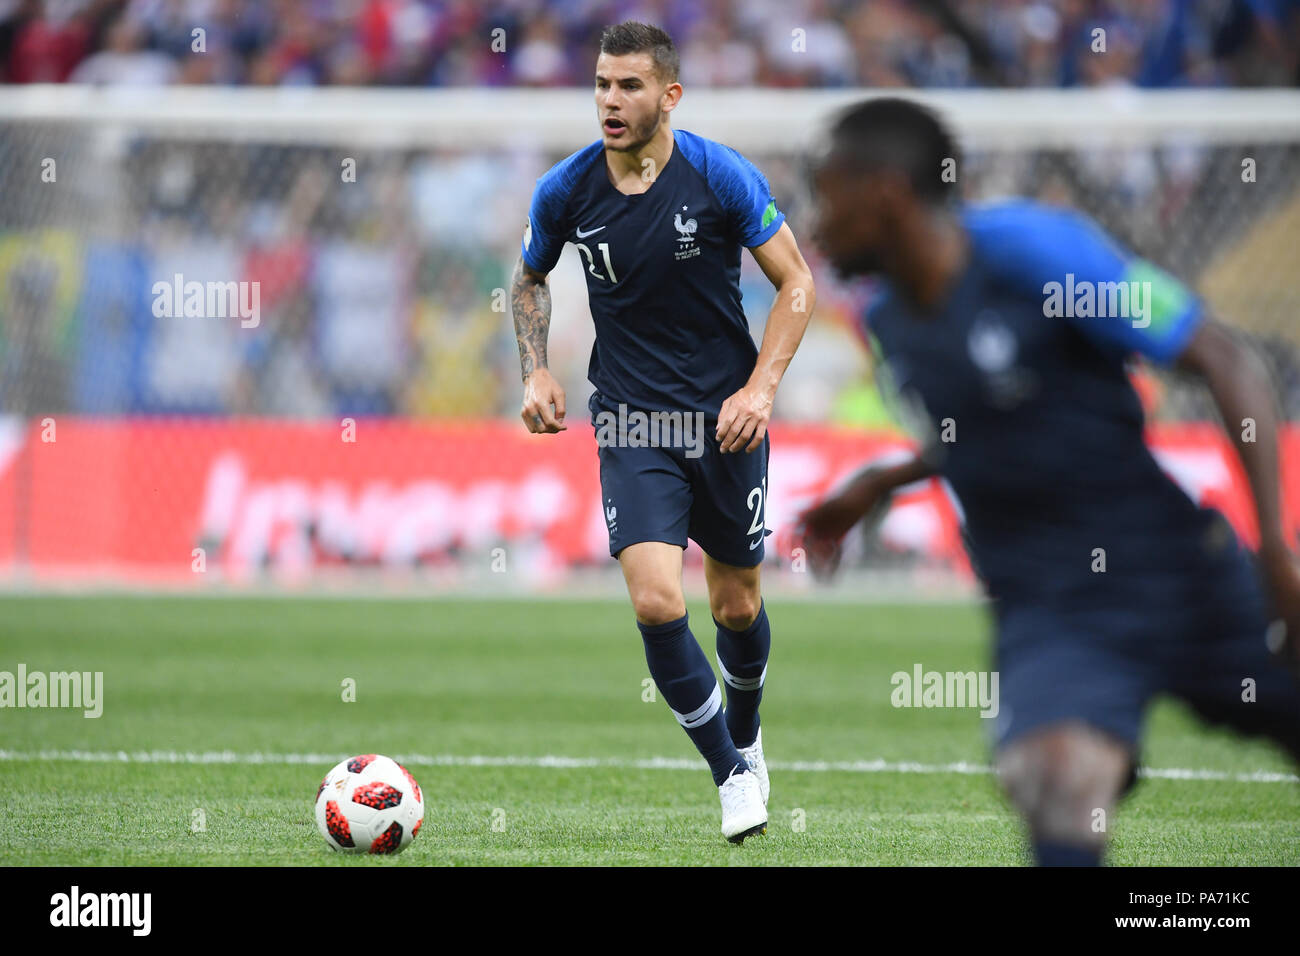 Lucas 15 Stock Photos Images Page 6 Alamy Asian Games 2018 Ball Bhin 13cm 15th July Hernandez France Ges